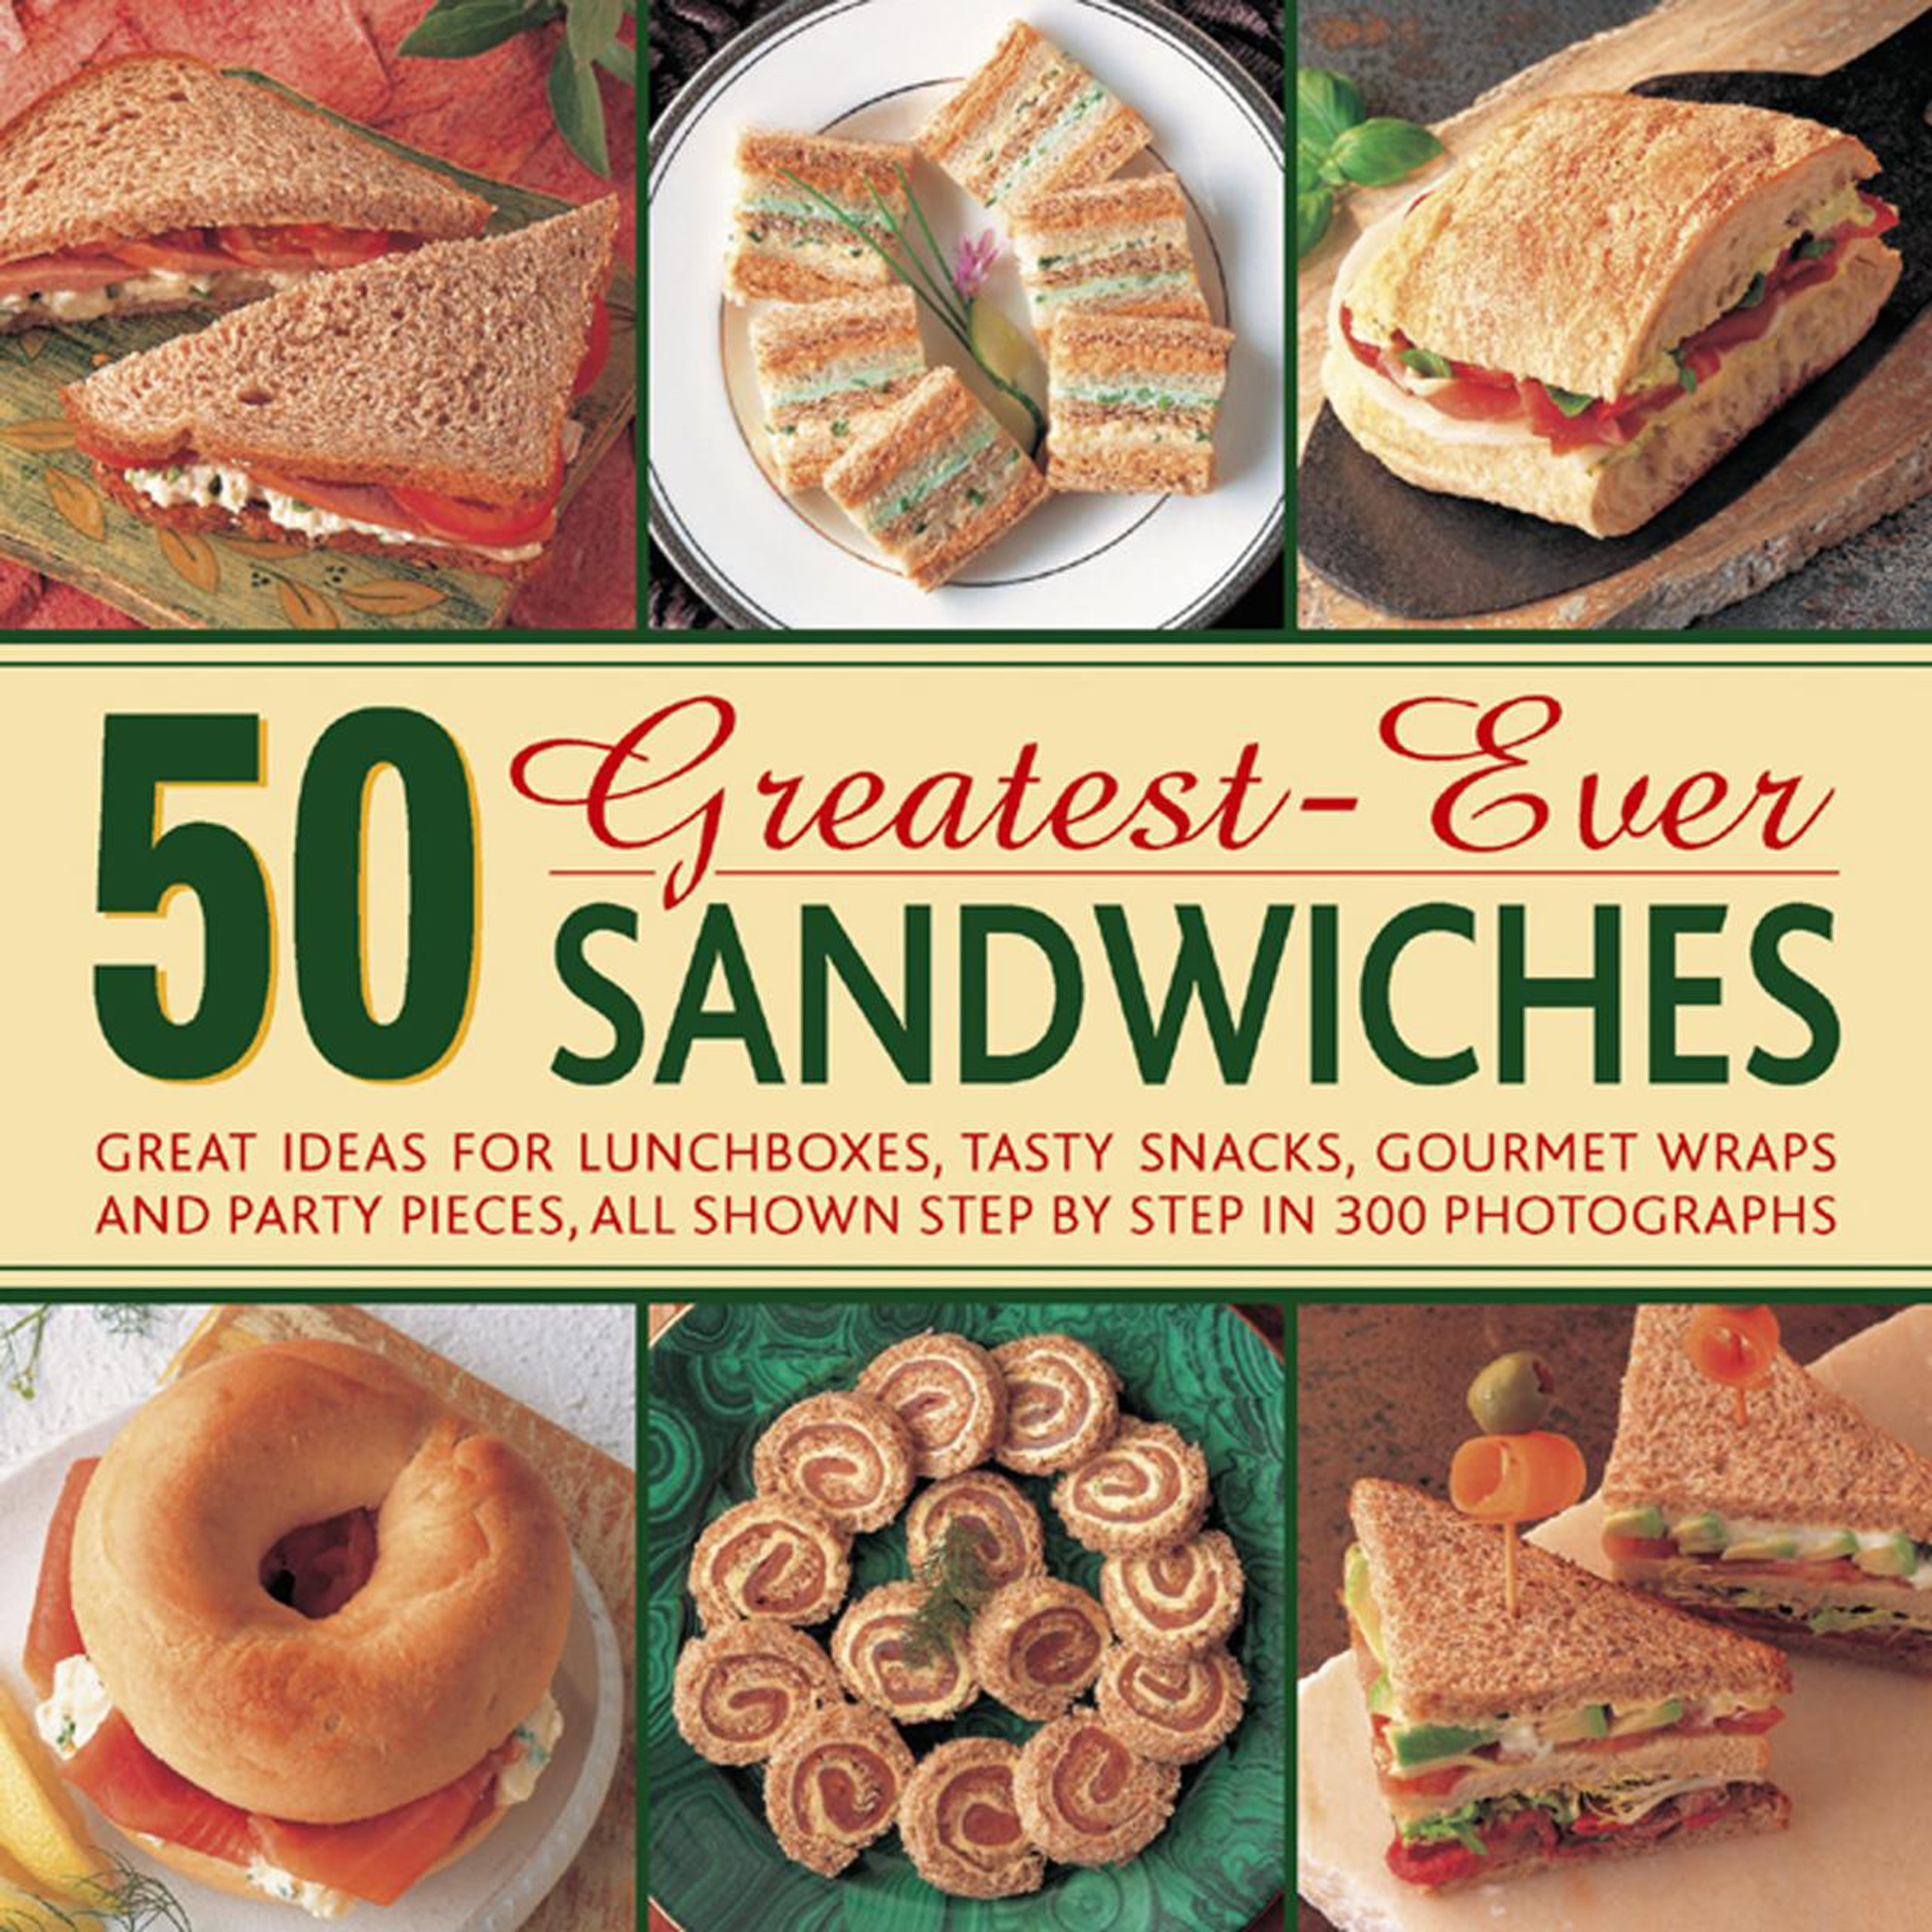 50 greatest ever sandwiches great ideas for lunchboxes tasty 50 greatest ever sandwiches great ideas for lunchboxes tasty snacks gourmet wraps and party pieces all shown step by step in 300 photographs carole forumfinder Gallery